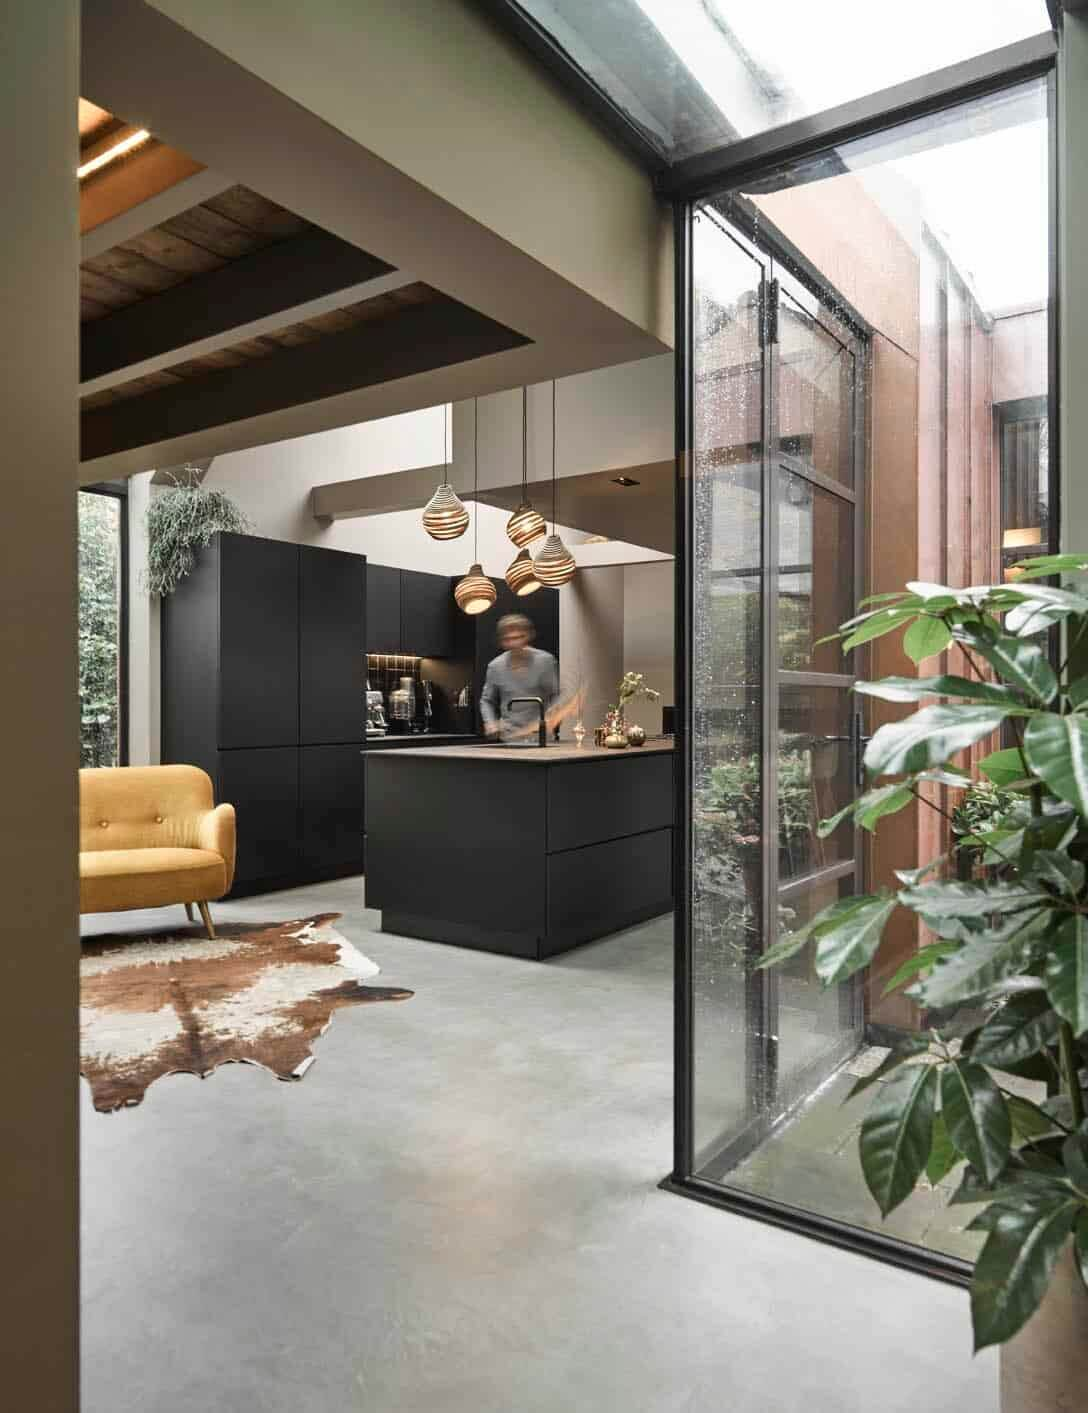 A Characteristic Design Villa with Carriage House in The Netherlands